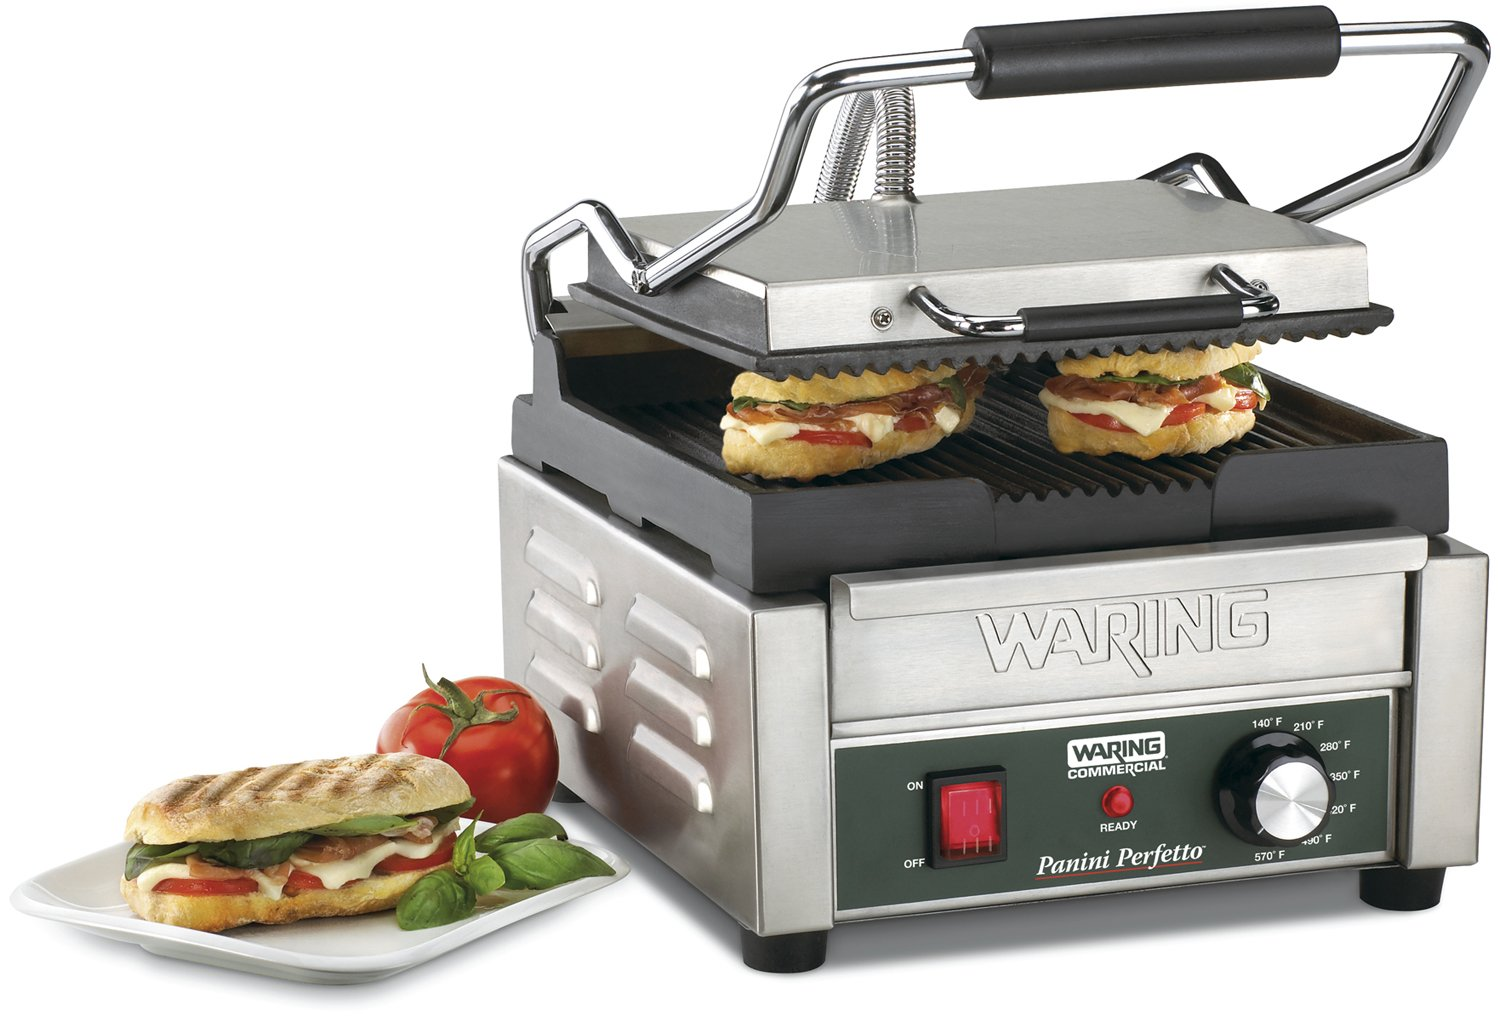 Waring Commercial Wpg150 Compact Italian Style Panini Grill 120 Volt Amazon In Home Kitchen